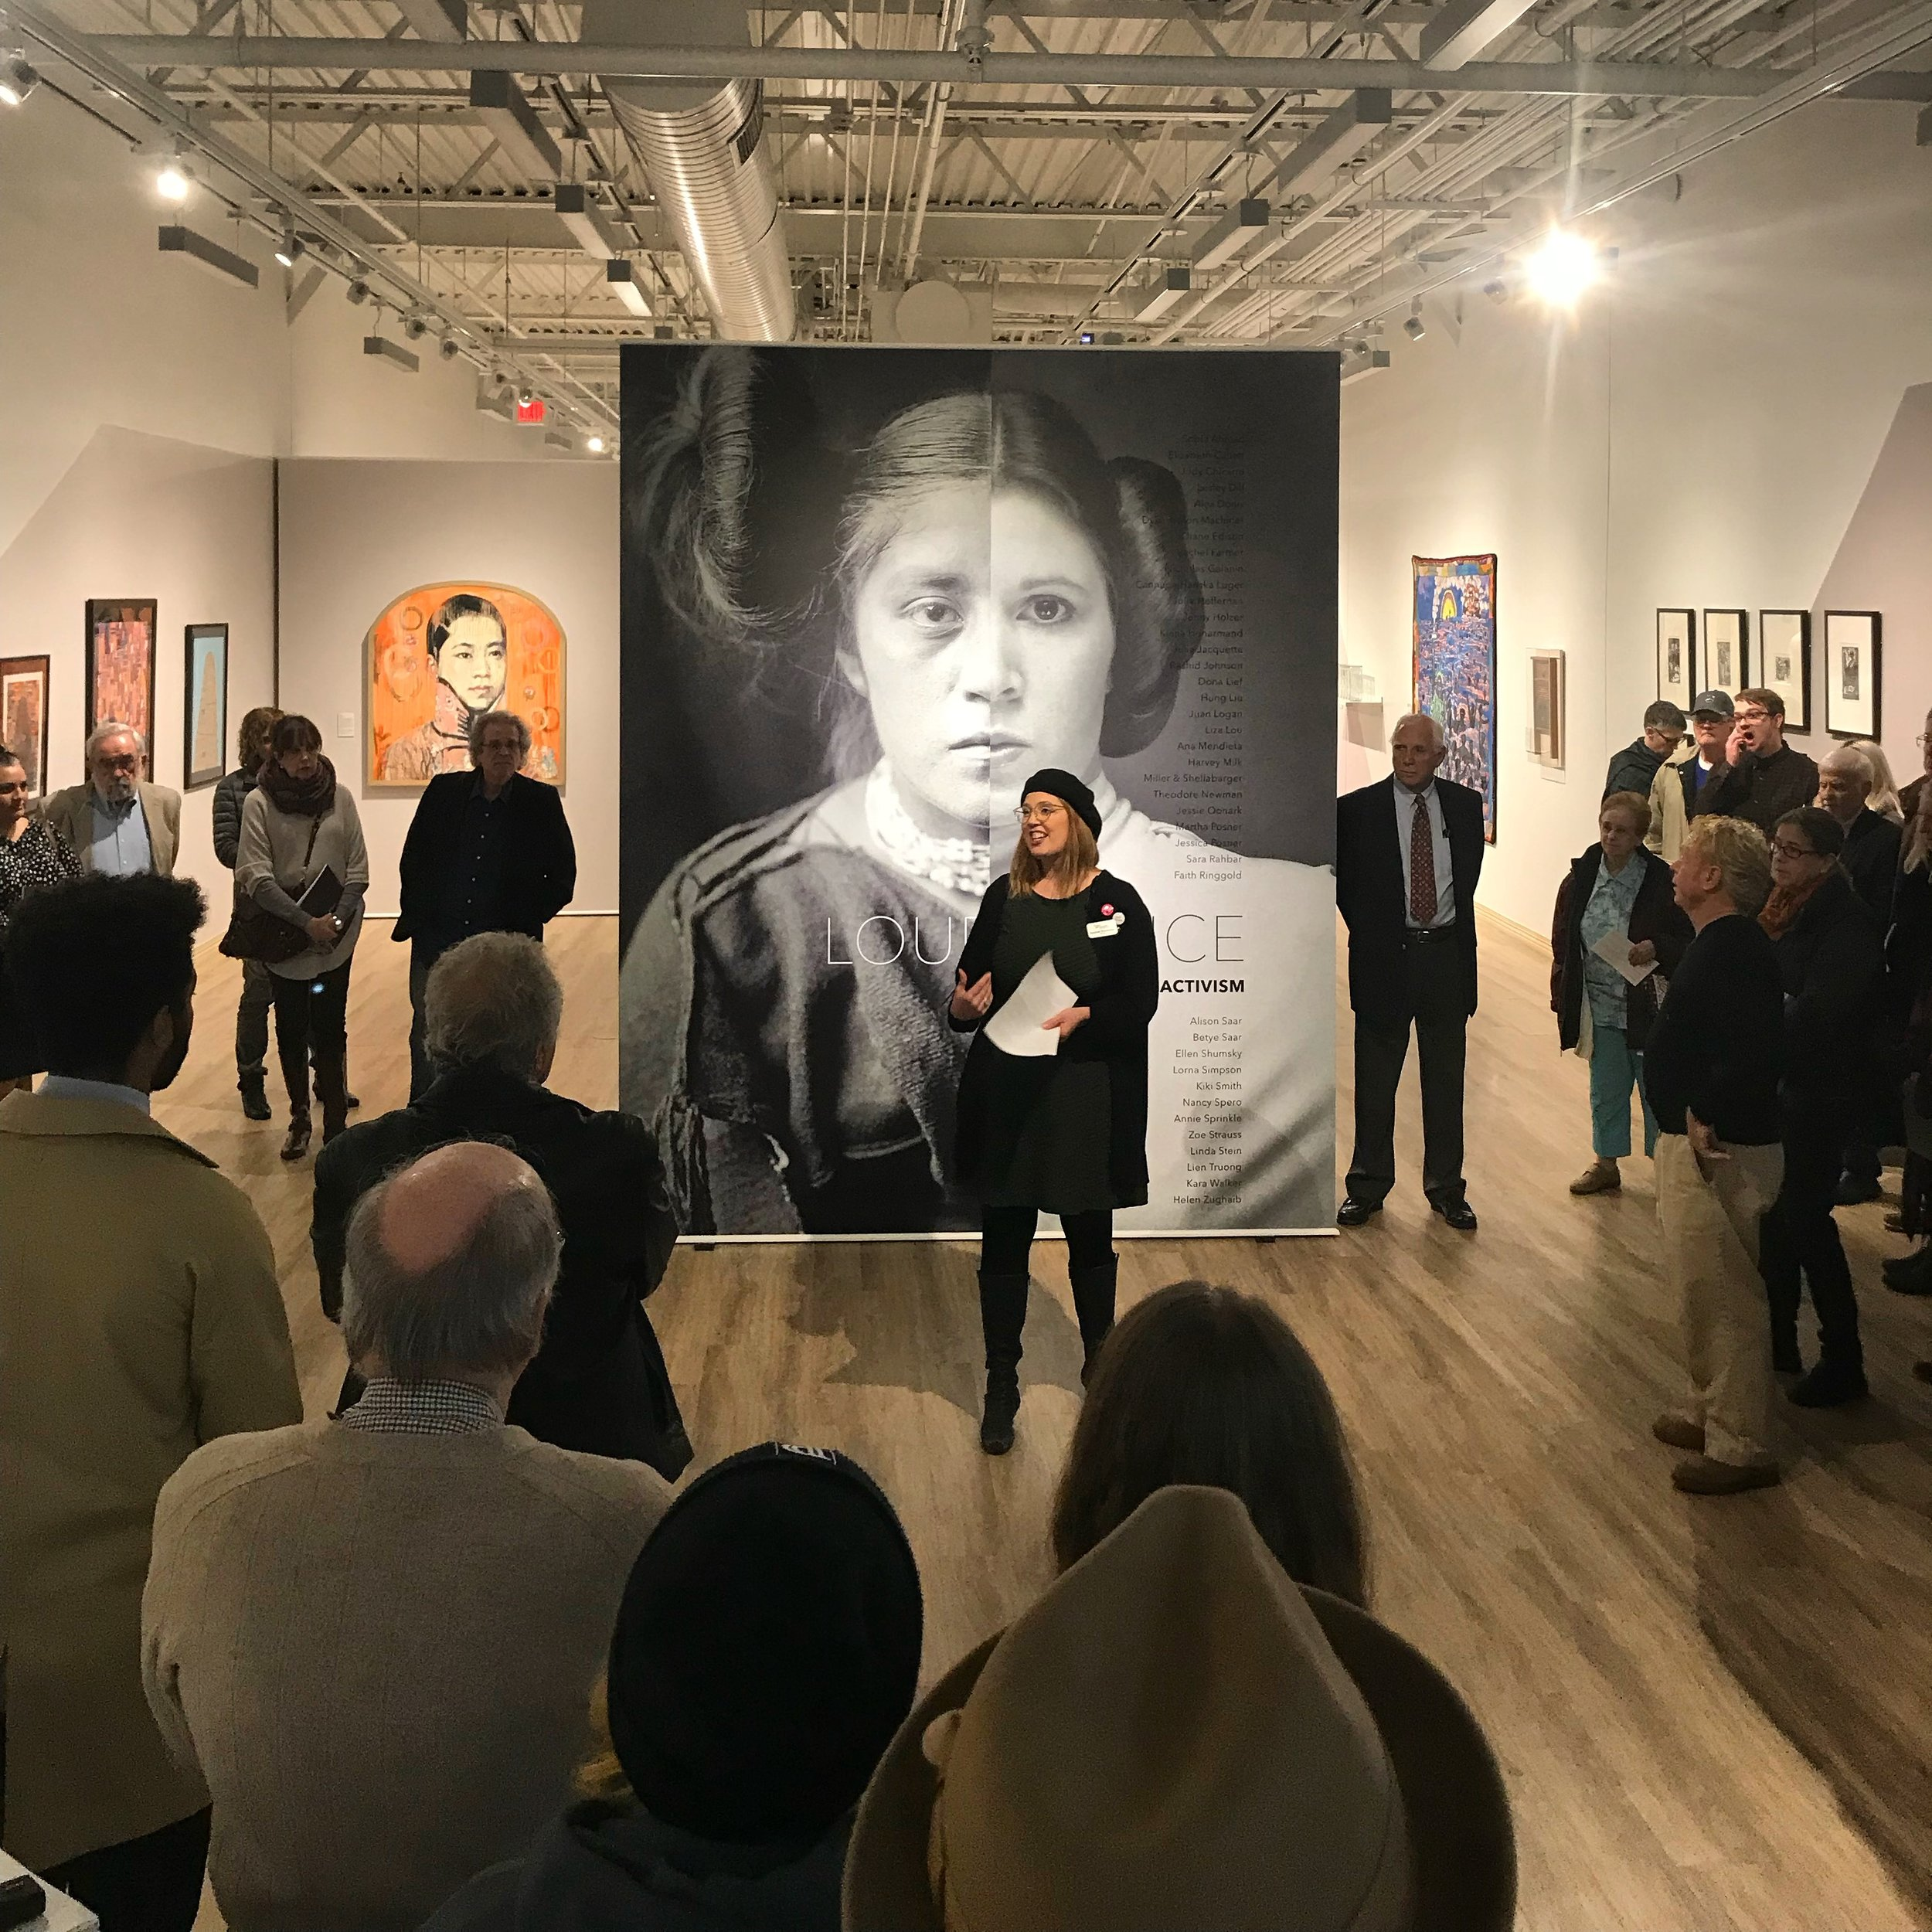 Opening Night Curator's Tour of Loud Silence: Expressions of Activism, Sordoni Gallery